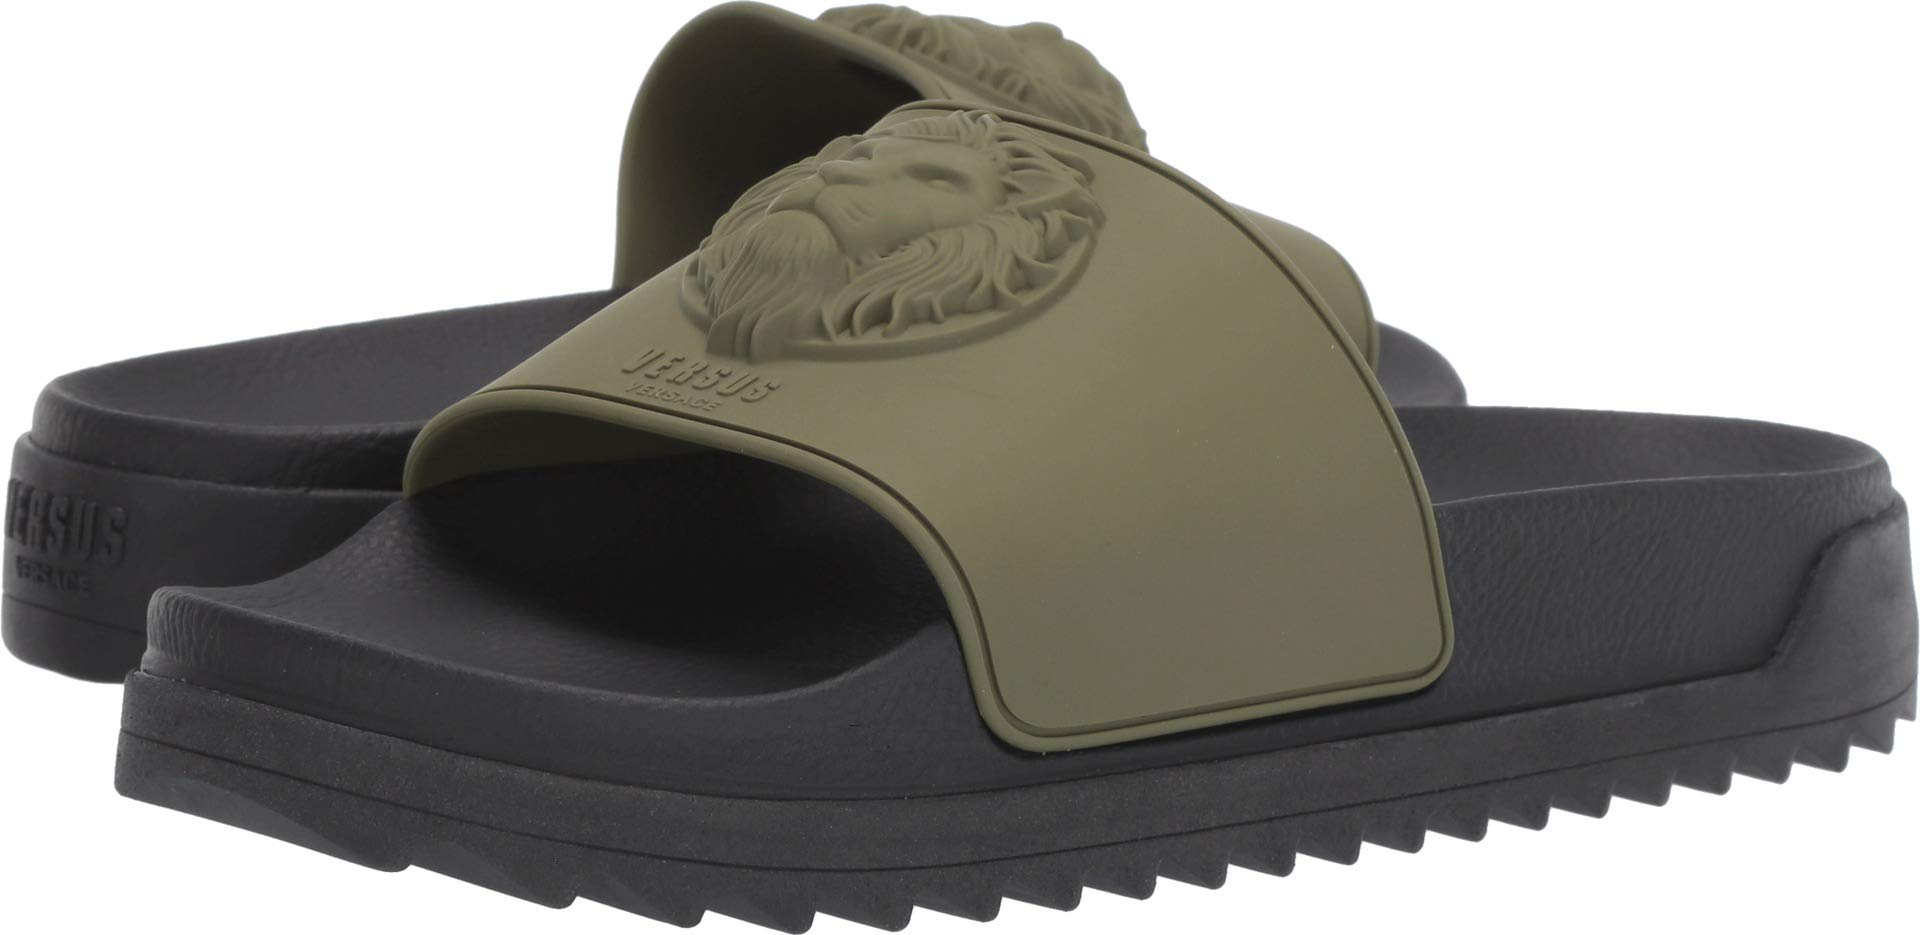 Versus Versace Men's Lion Slides Military Green/Black 44 M EU